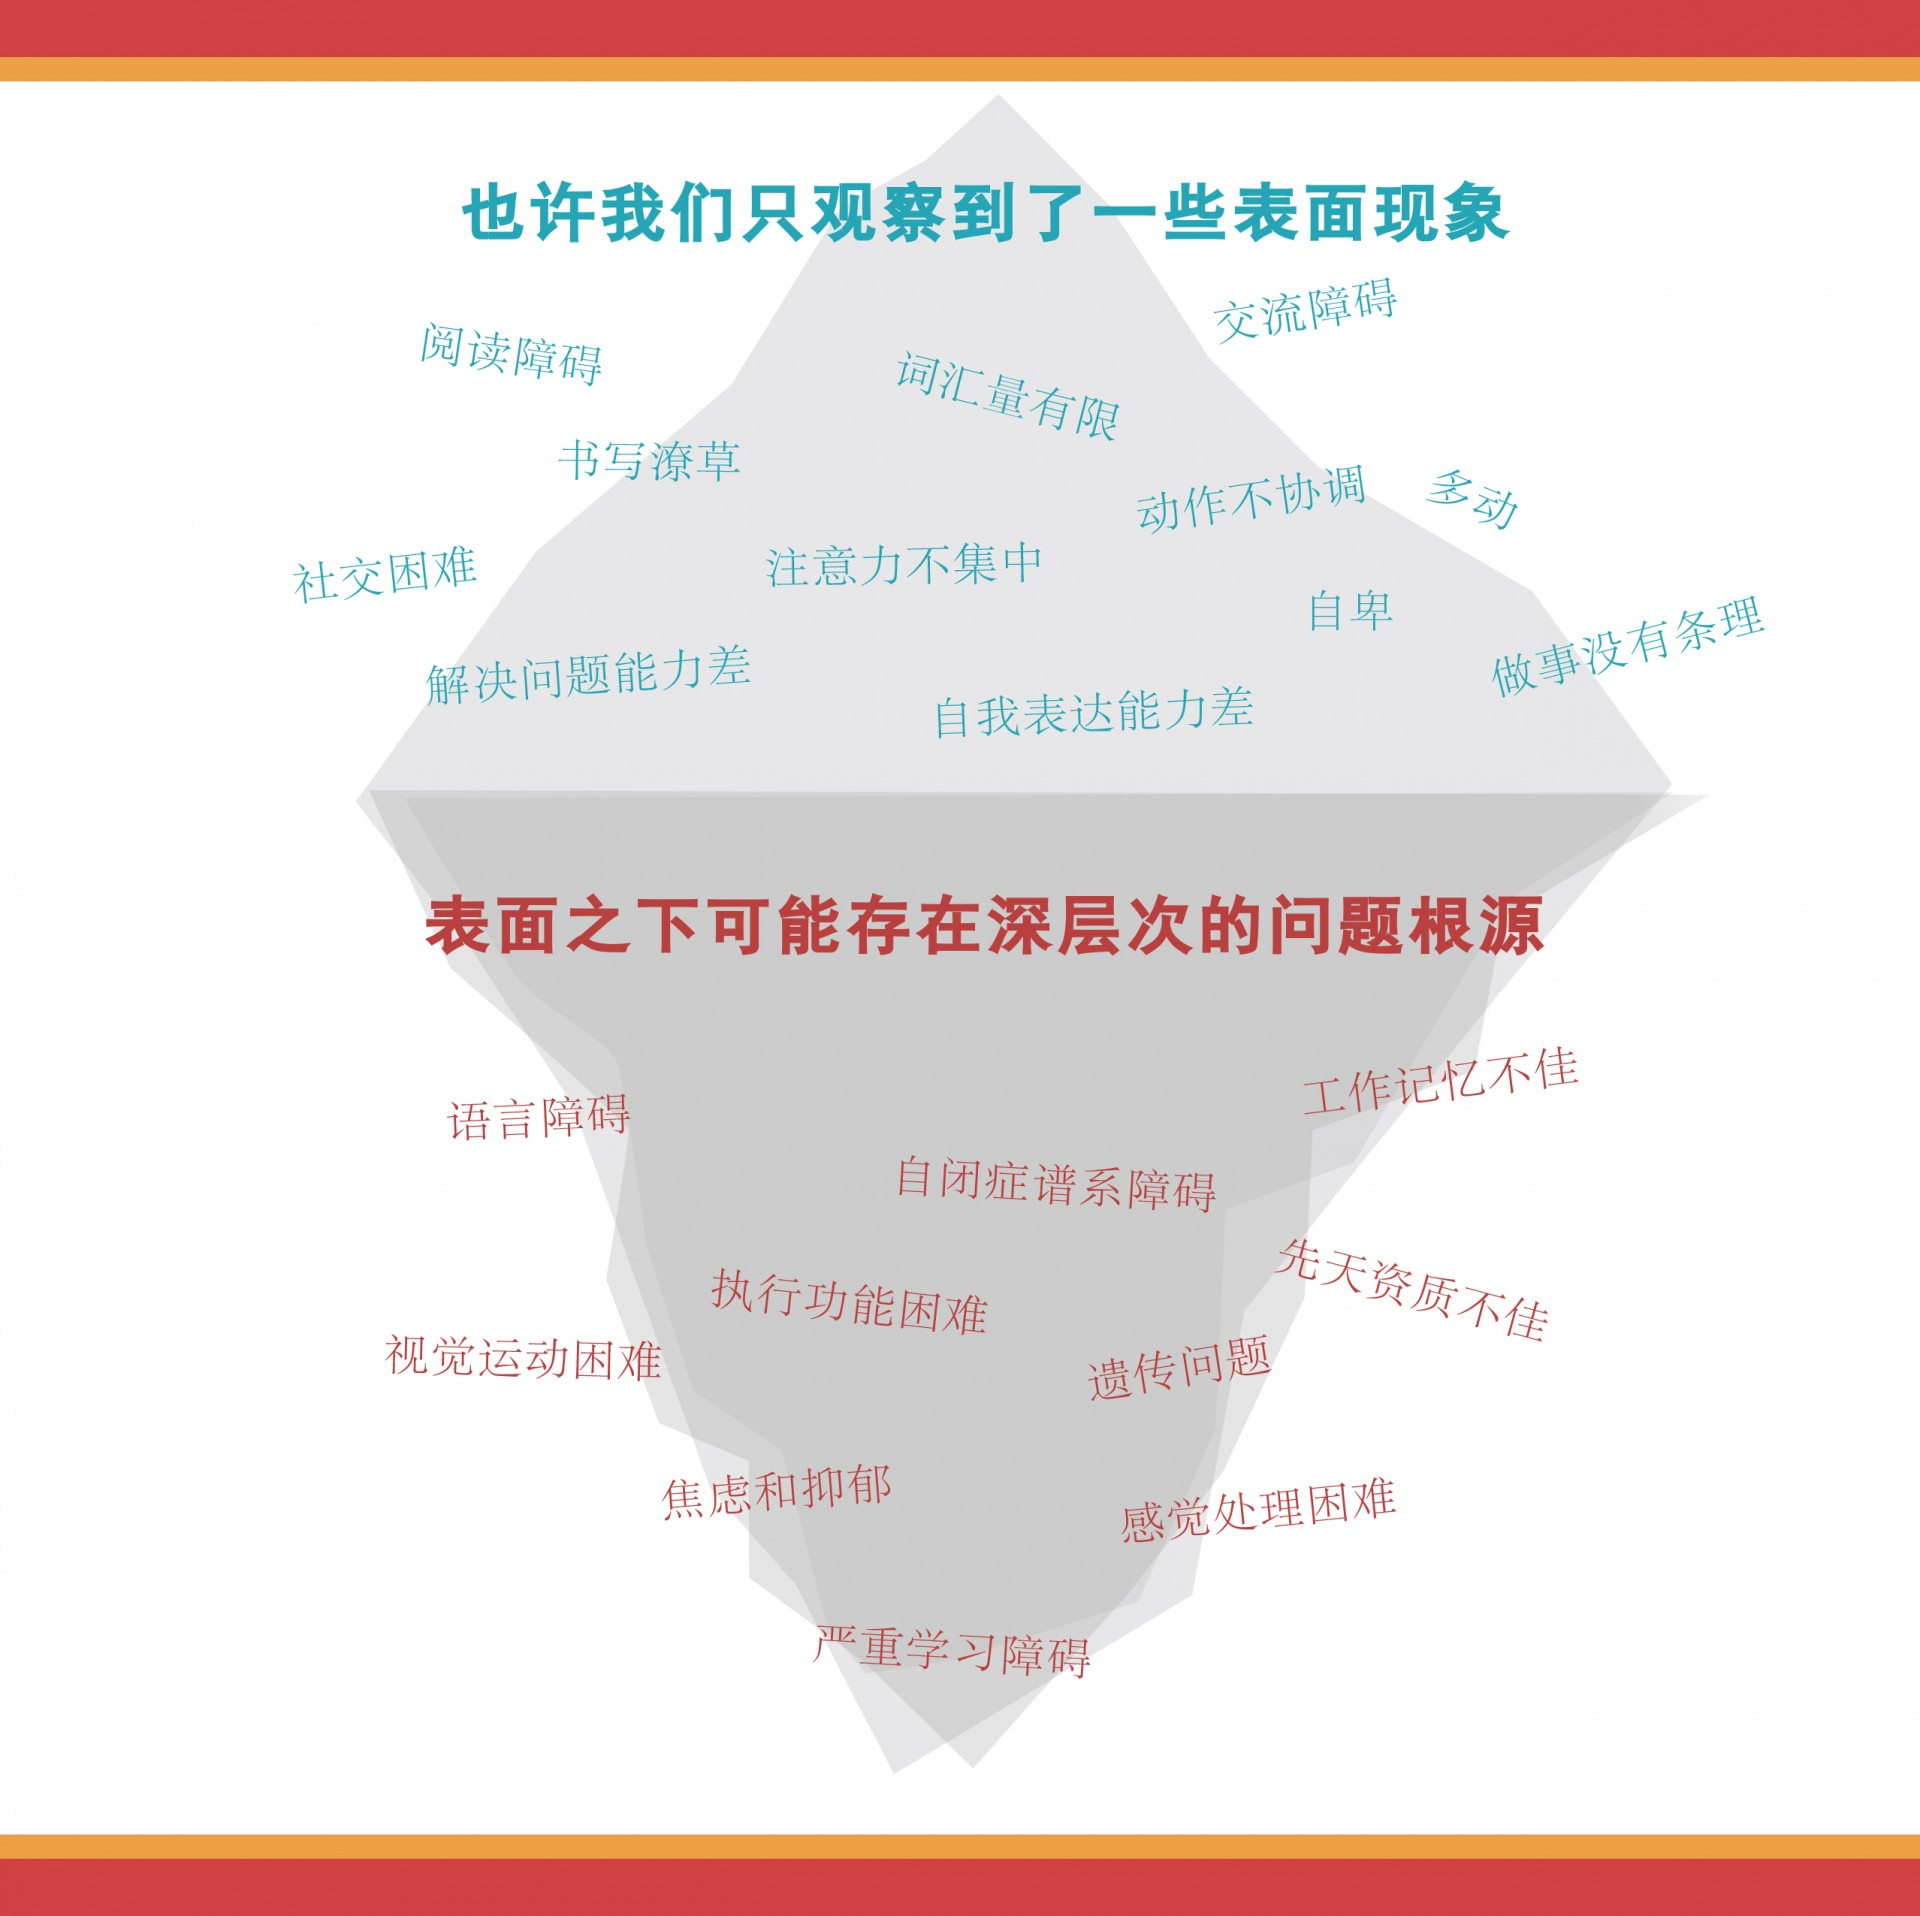 _ILC-Brochure-Chinese-4_01